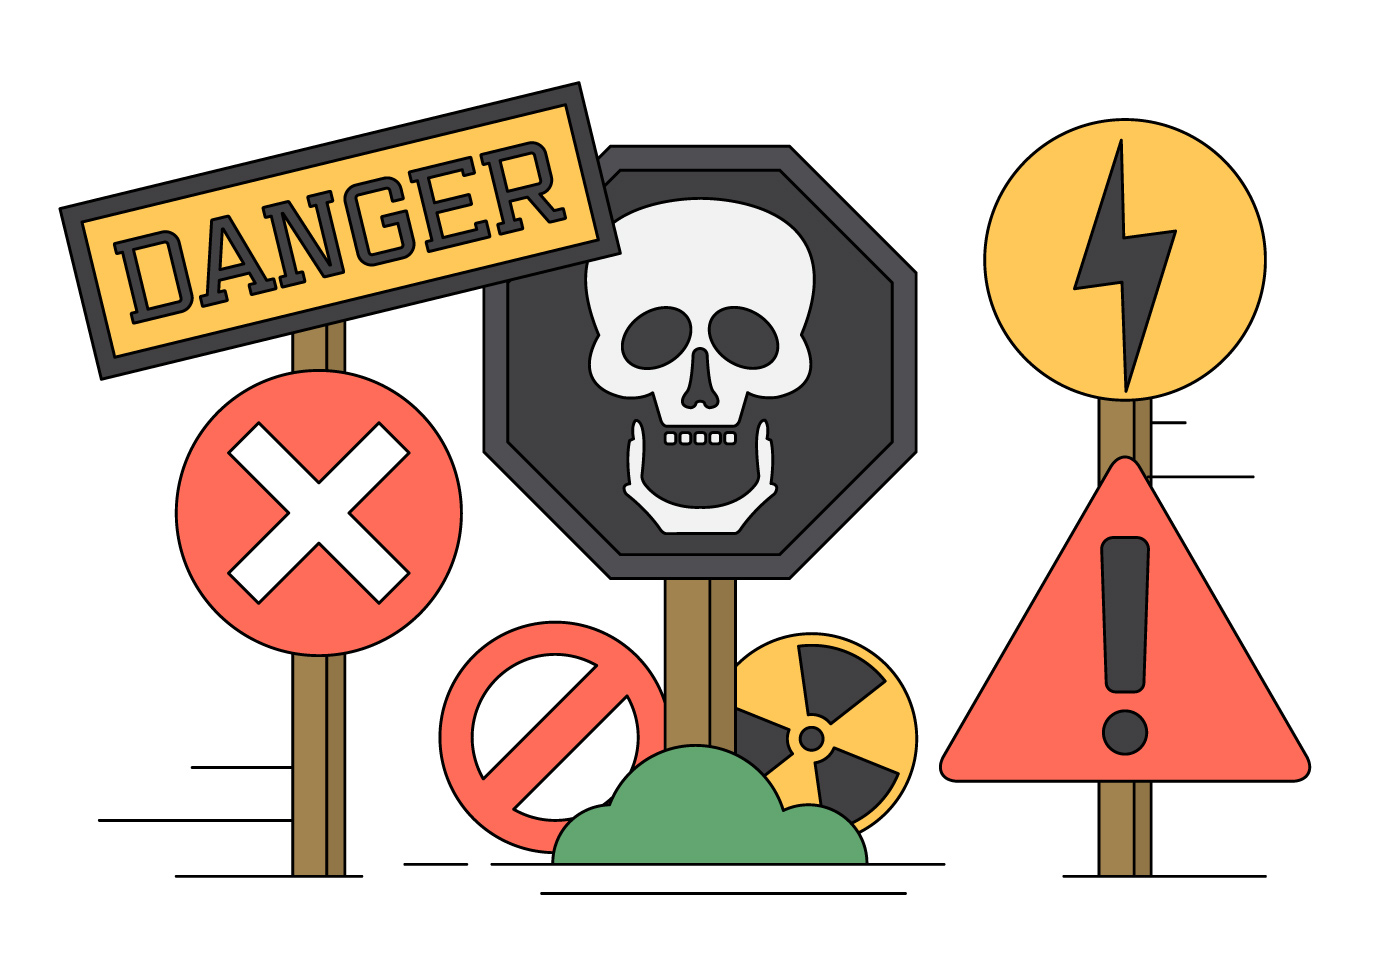 Vector Illustration Of Danger Sings And Icons Download Free Vectors Clipart Graphics Vector Art